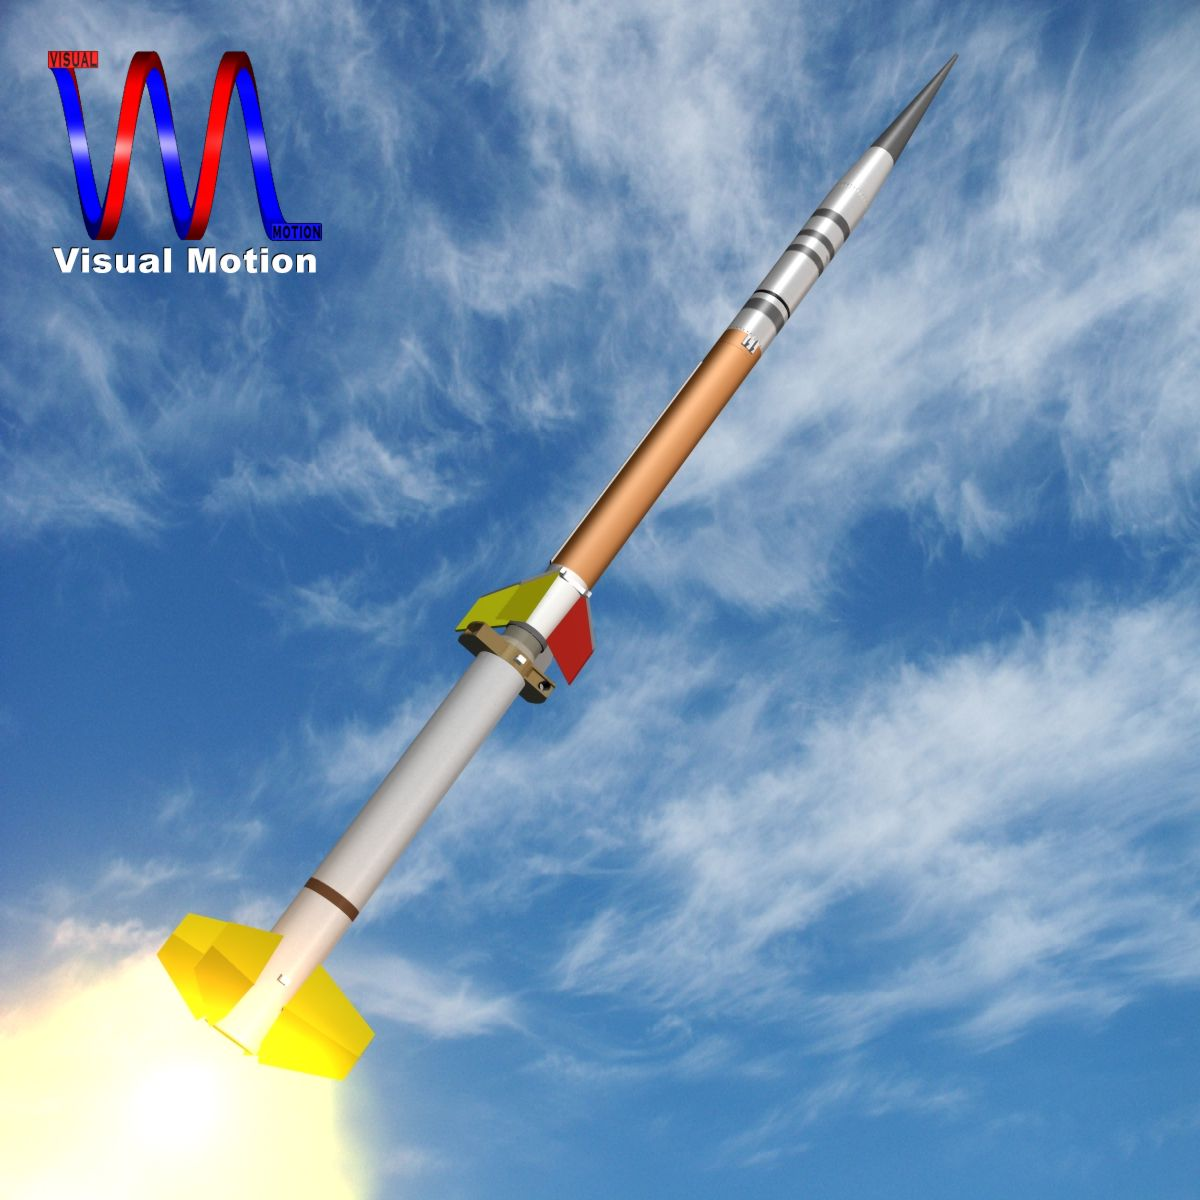 us terrier-improved malemute rocket 3d model 3ds dxf cob x obj 145262